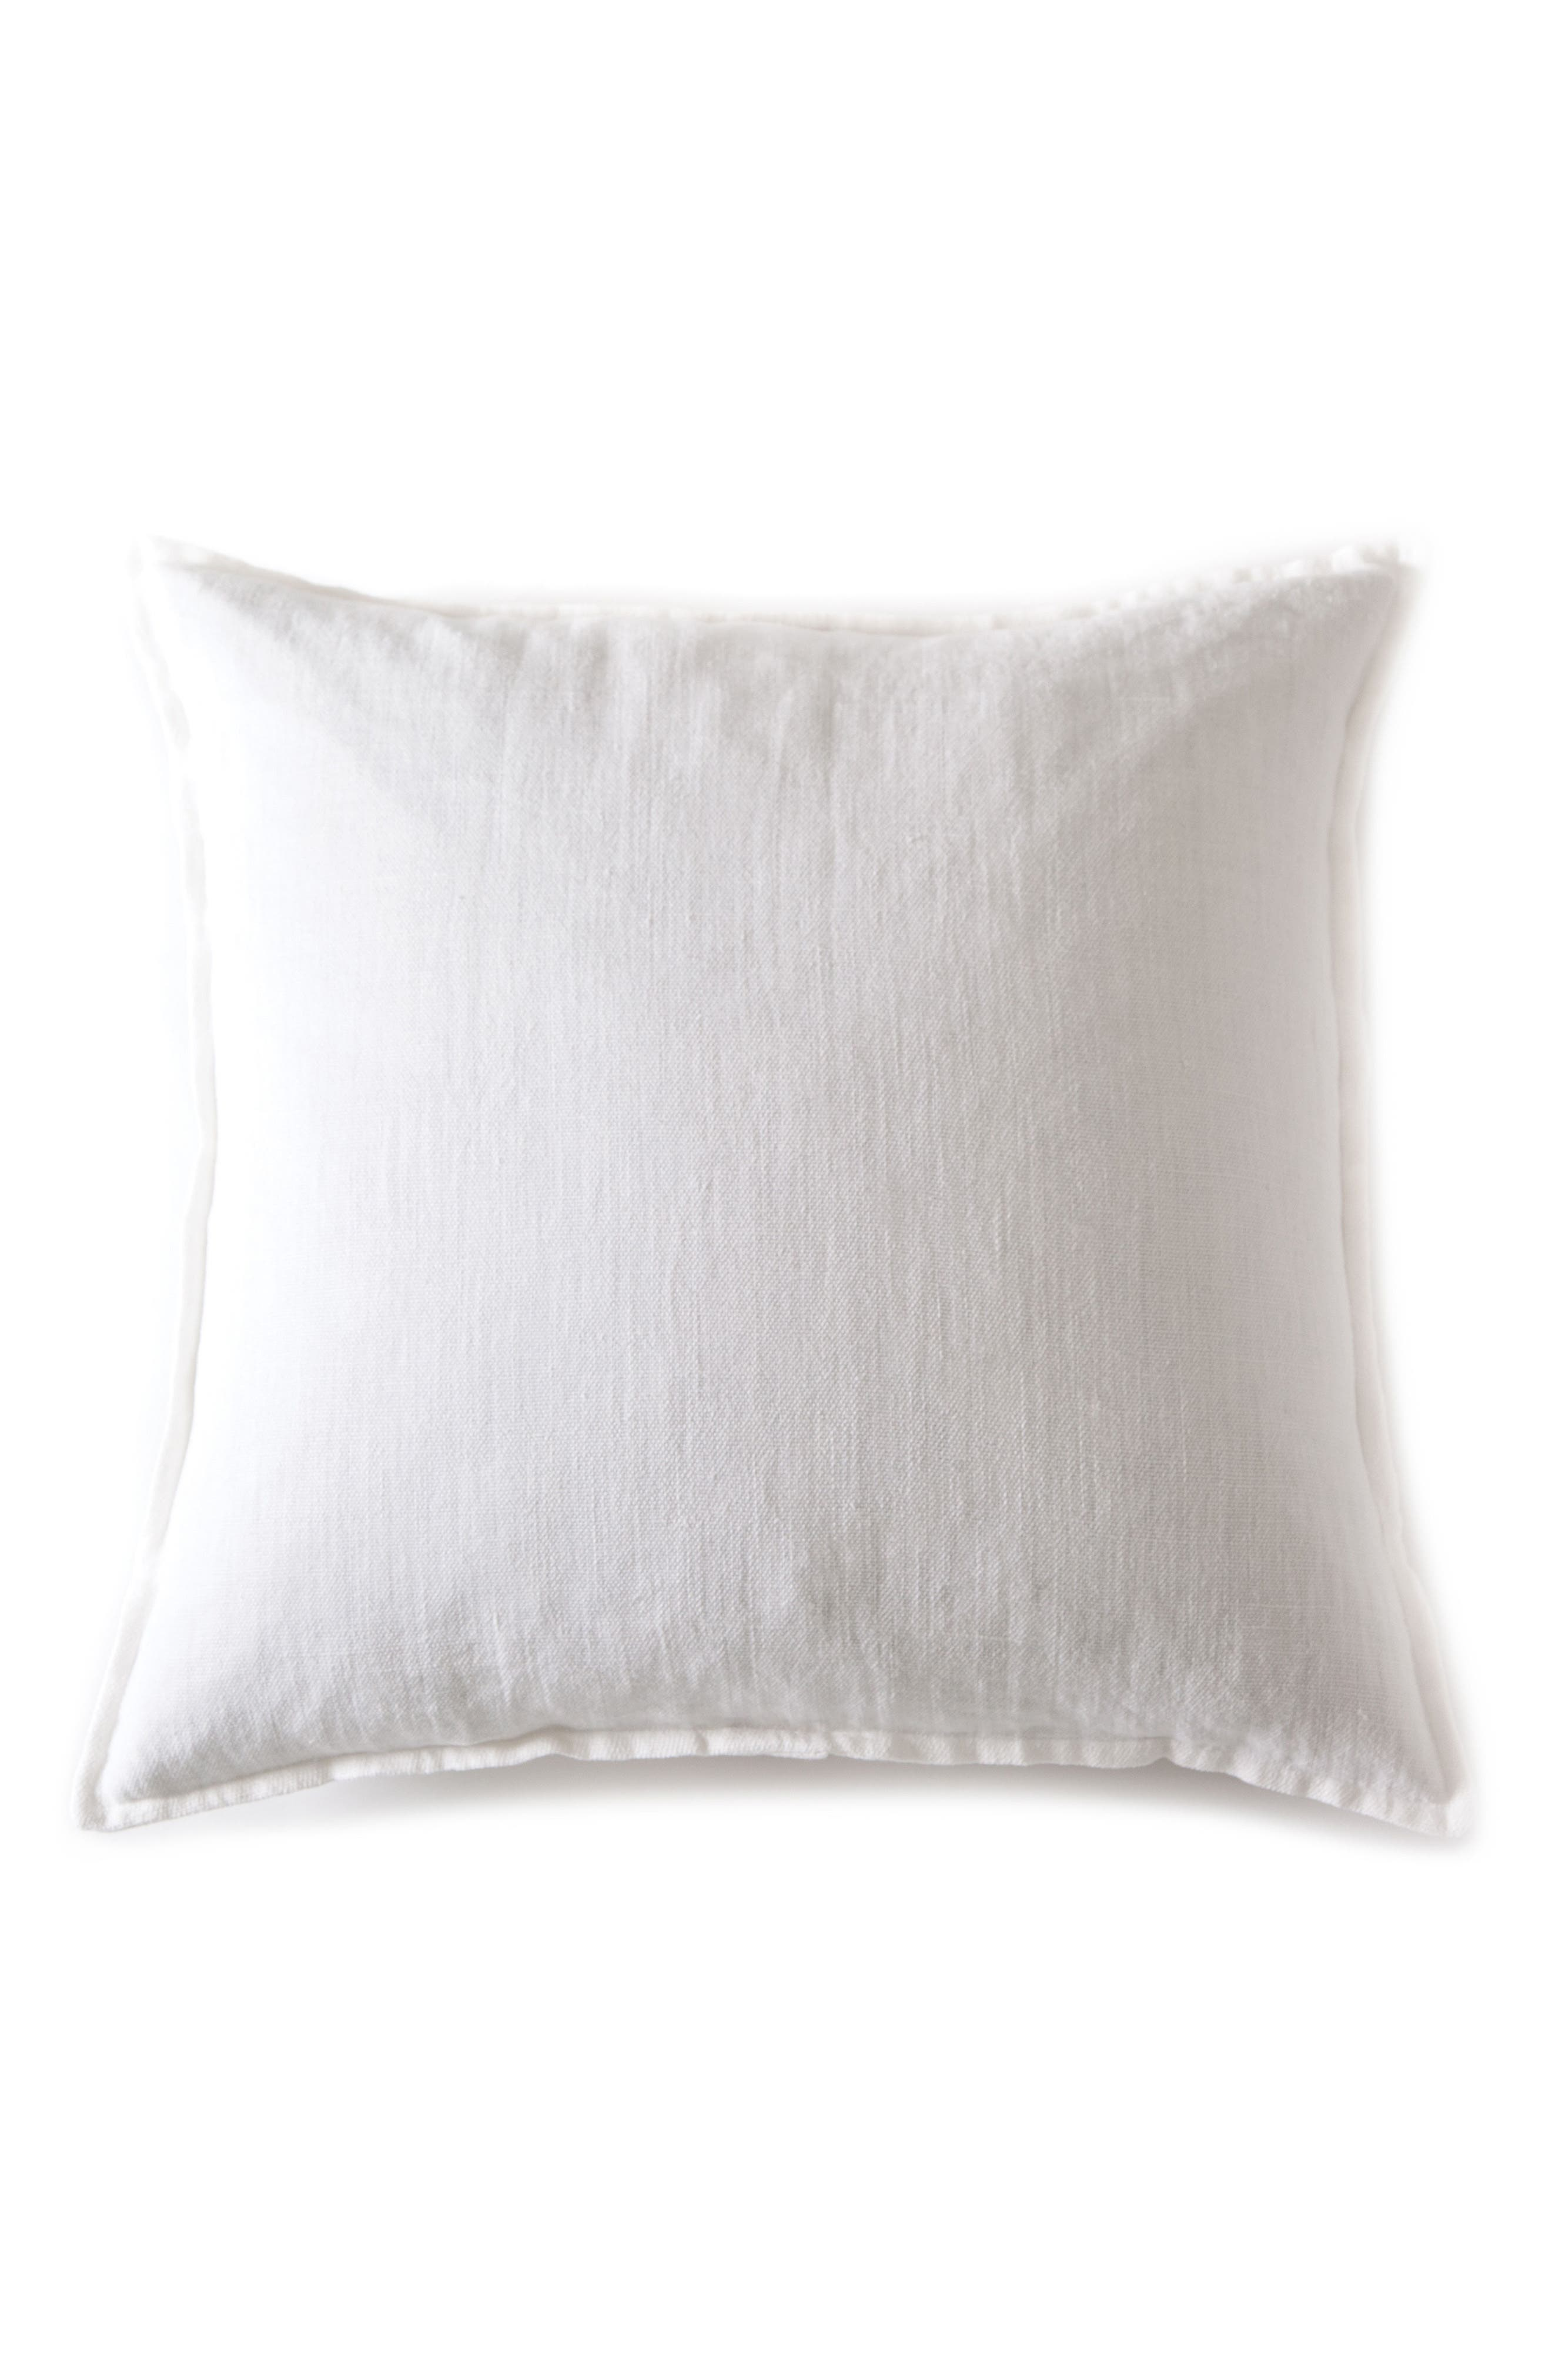 Pom Pom at Home Montauk Big Accent Pillow